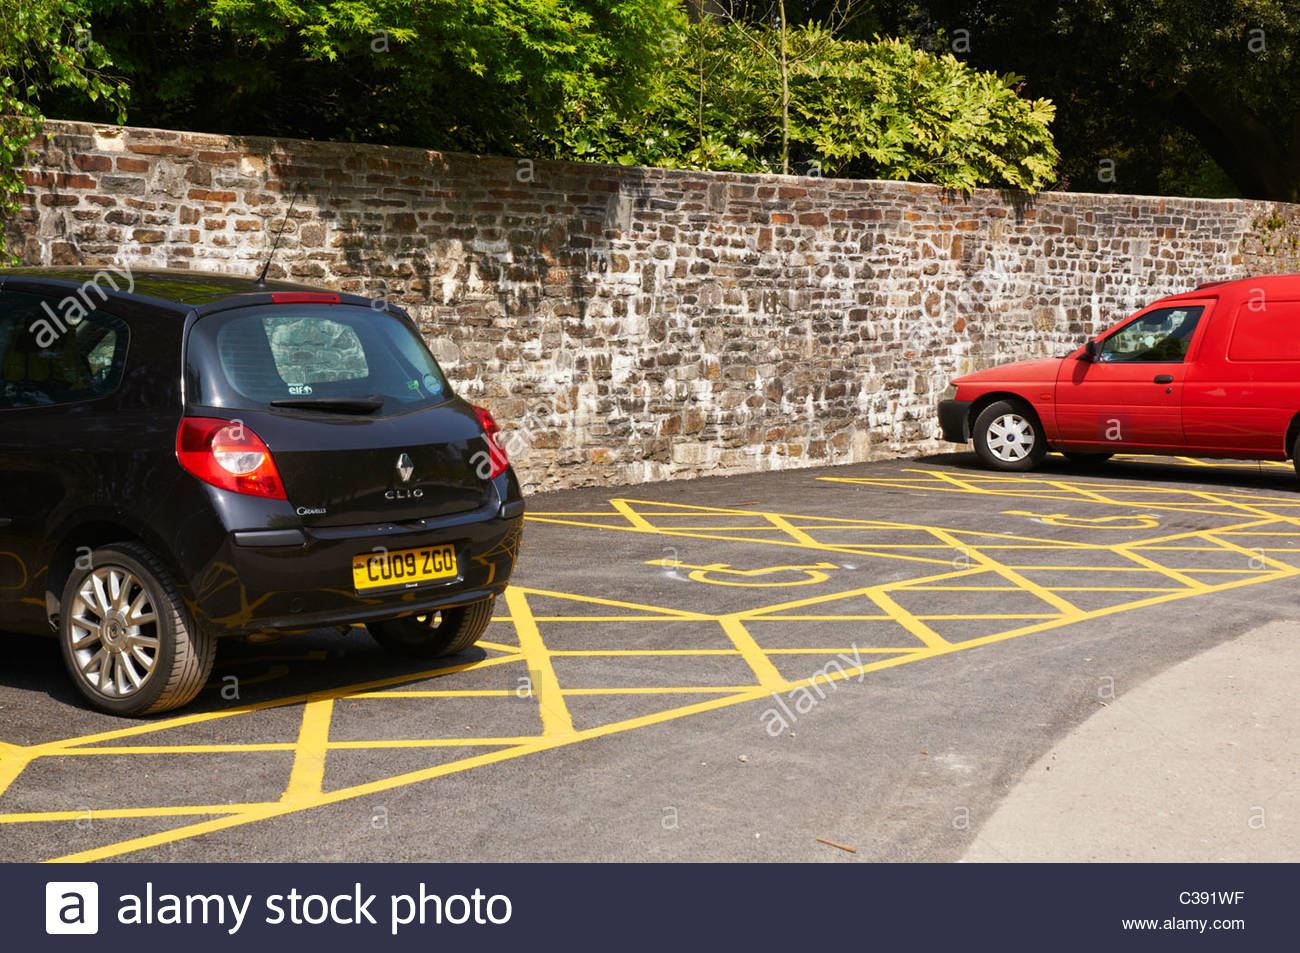 a motor car and a red van parked in a disabled parking bay - Stock Image